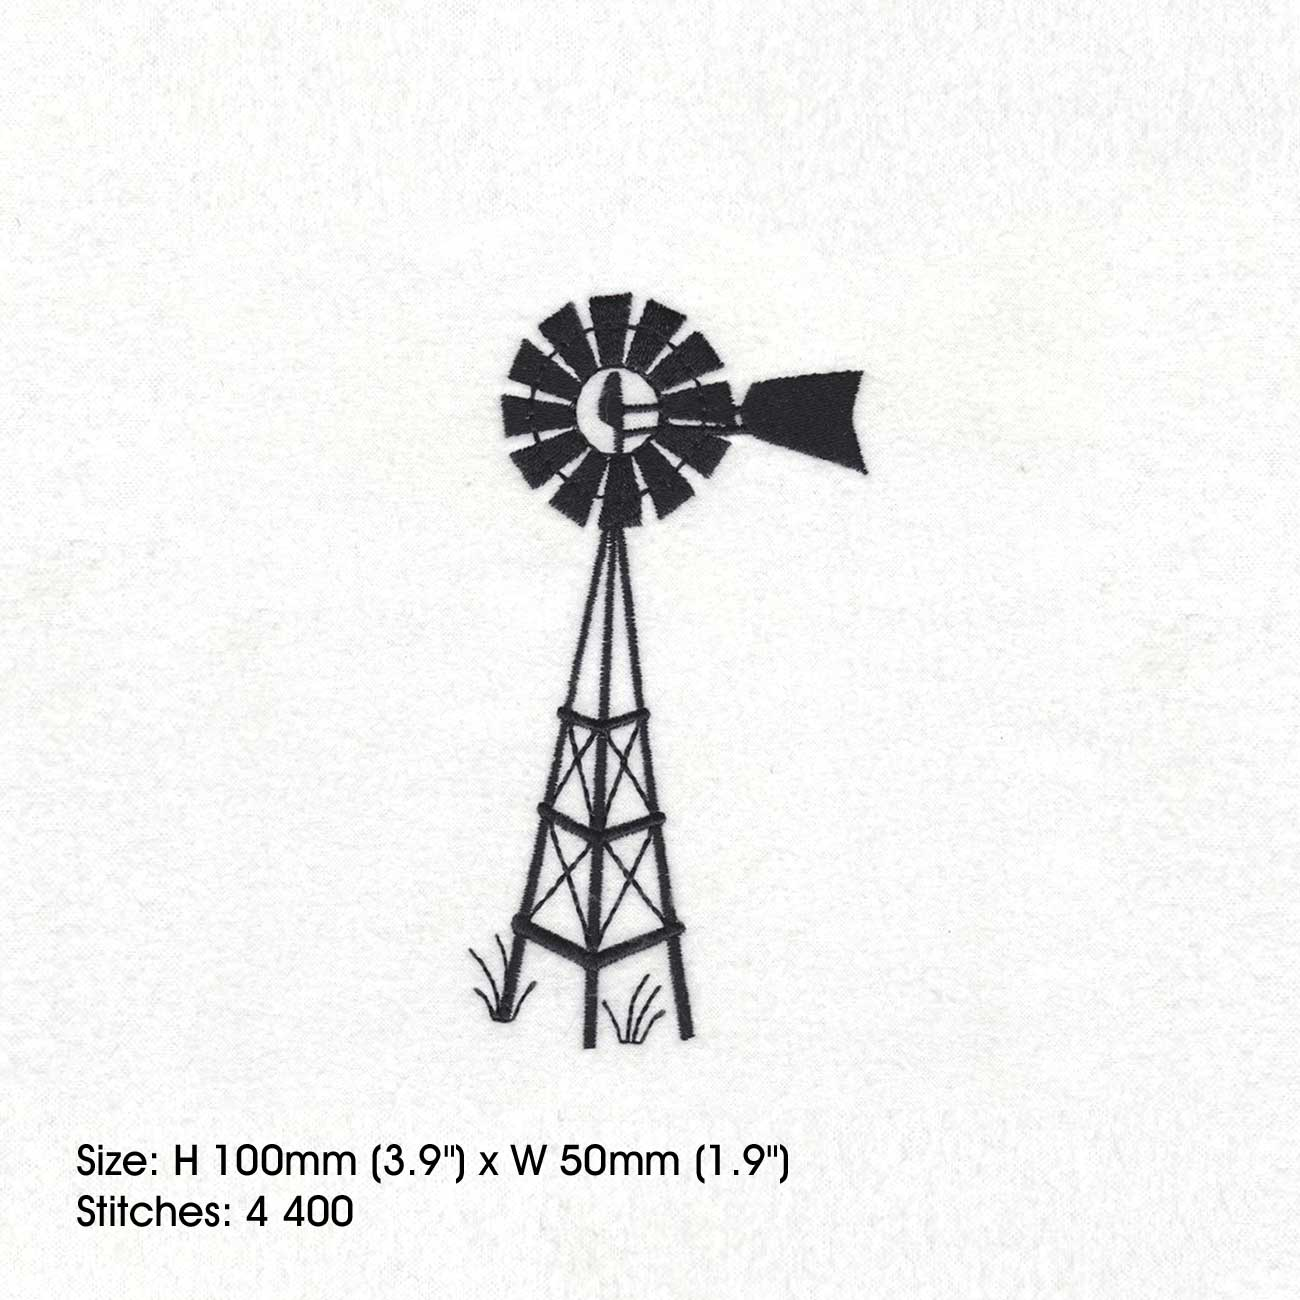 Full Stitches Simple Farm Windmill Windpomp Black Plaas Water With Wing Fin Finned Machine Embroidery